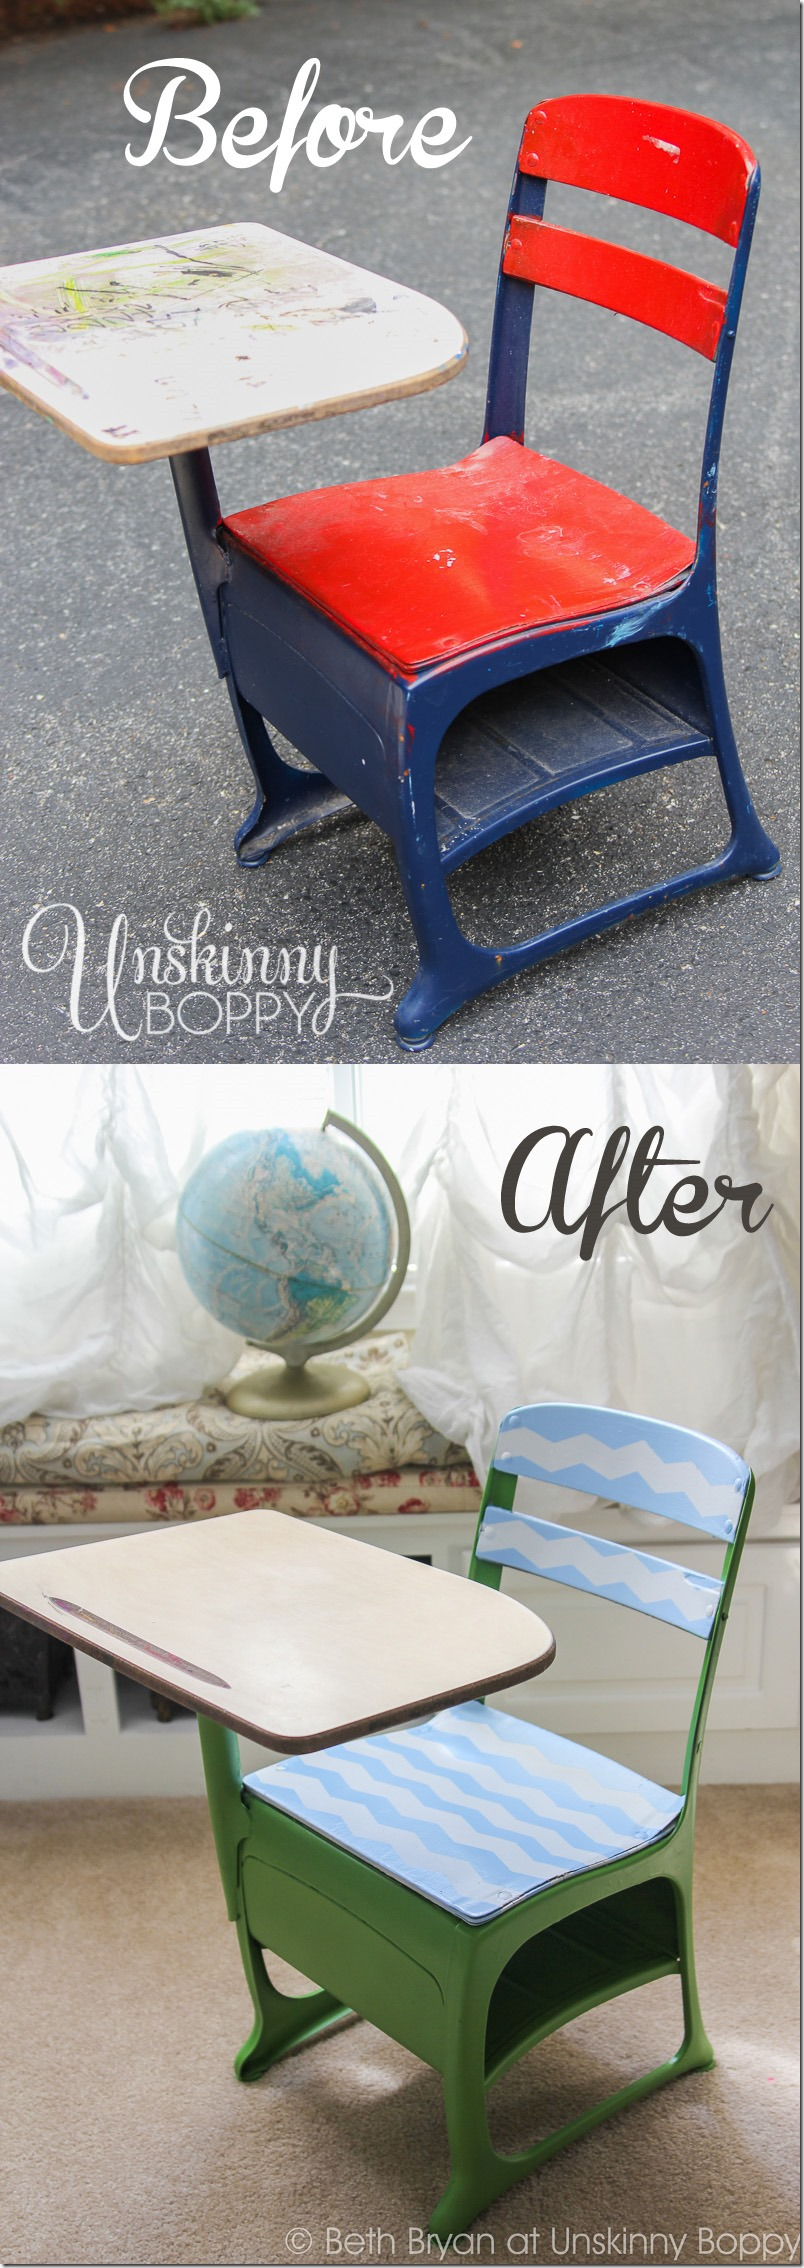 Vintage Student Desk DIY makeover with chevron frogtape